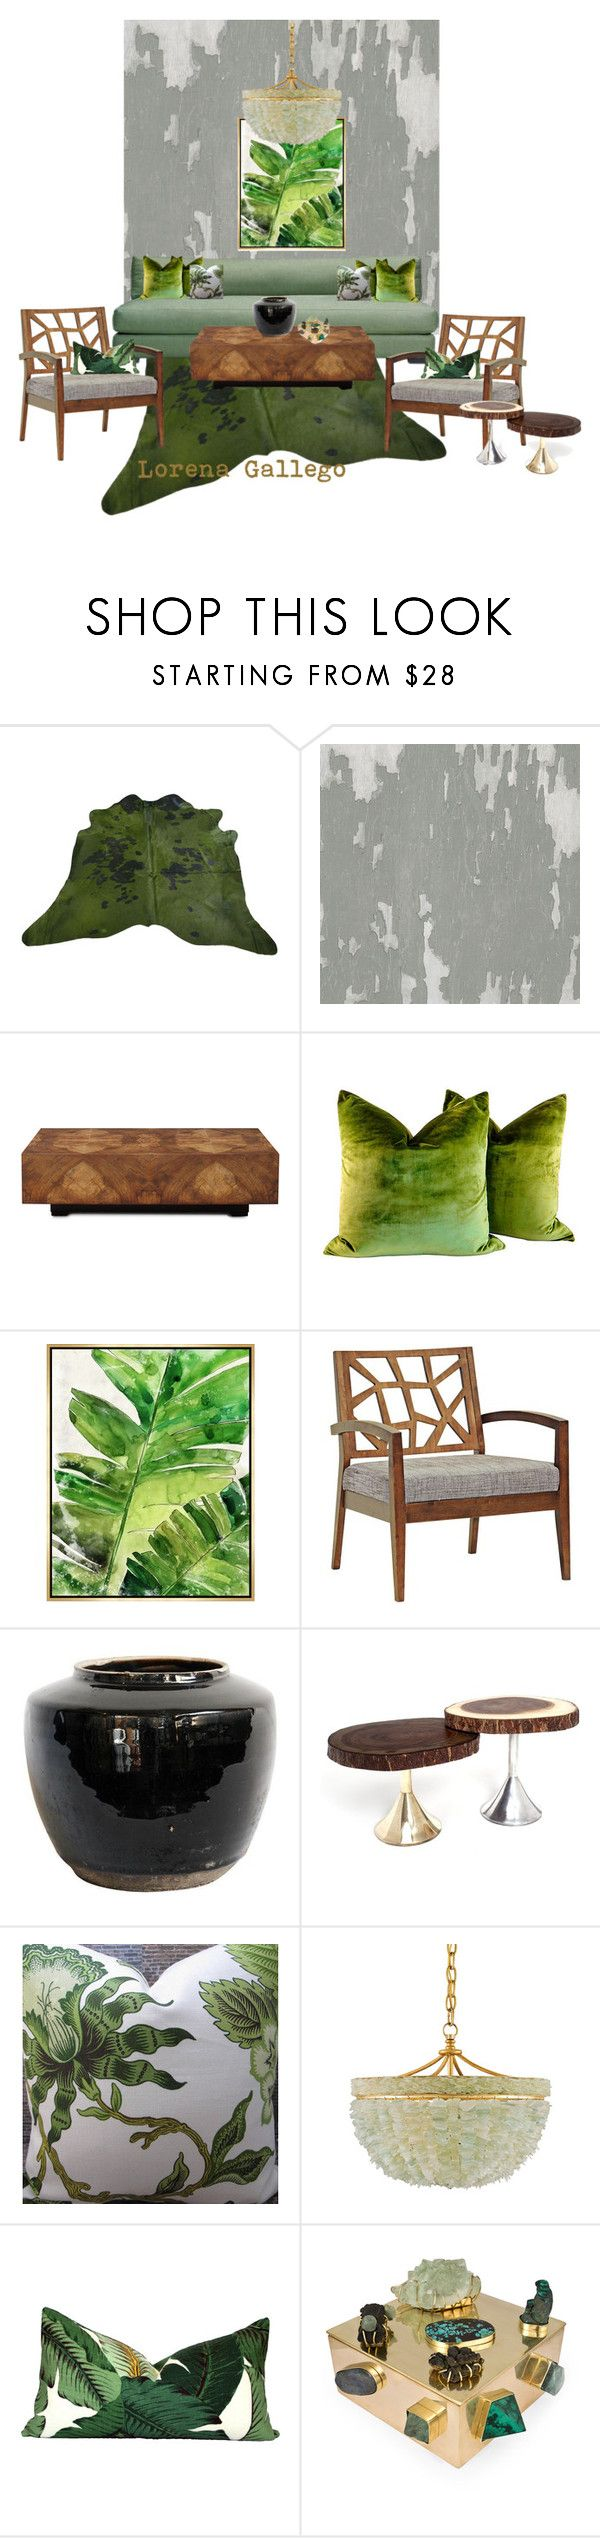 Home decor collage from january 2017 featuring currey company - Verde By Lorena Gallego On Polyvore Featuring Interior Interiors Interior Design Hogar Kelly Wearstlerinterior Decorating